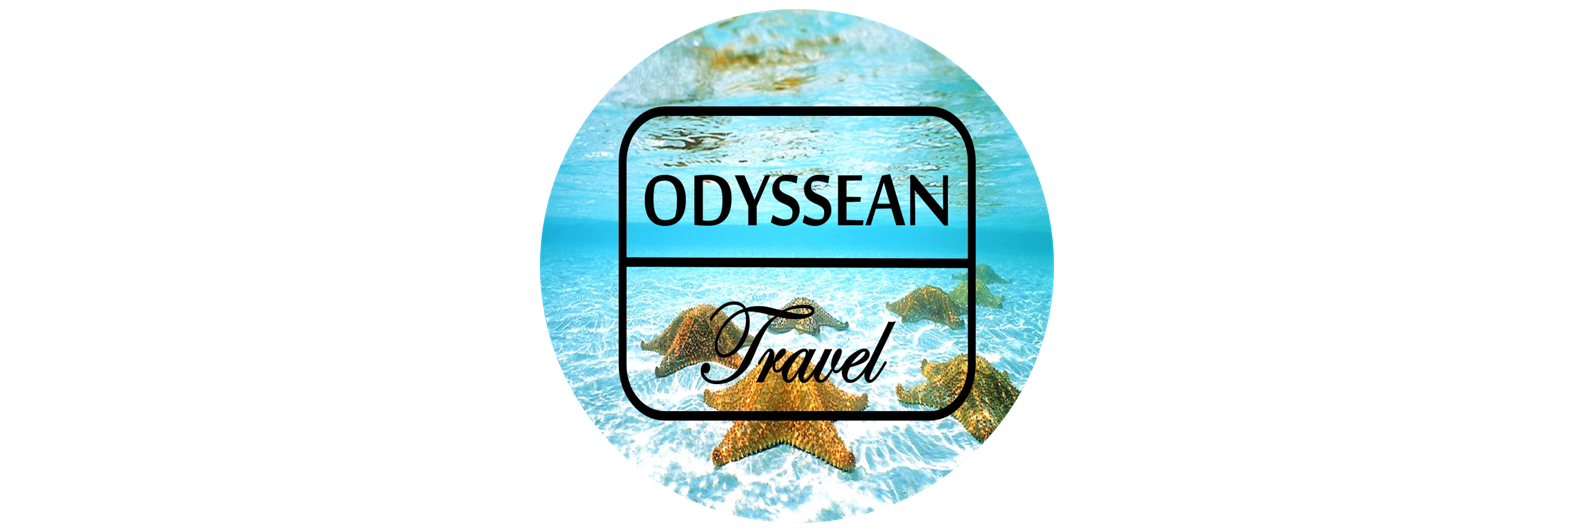 Adventure and Luxury Travel | Expert Travel Agents | Odyssean Travel